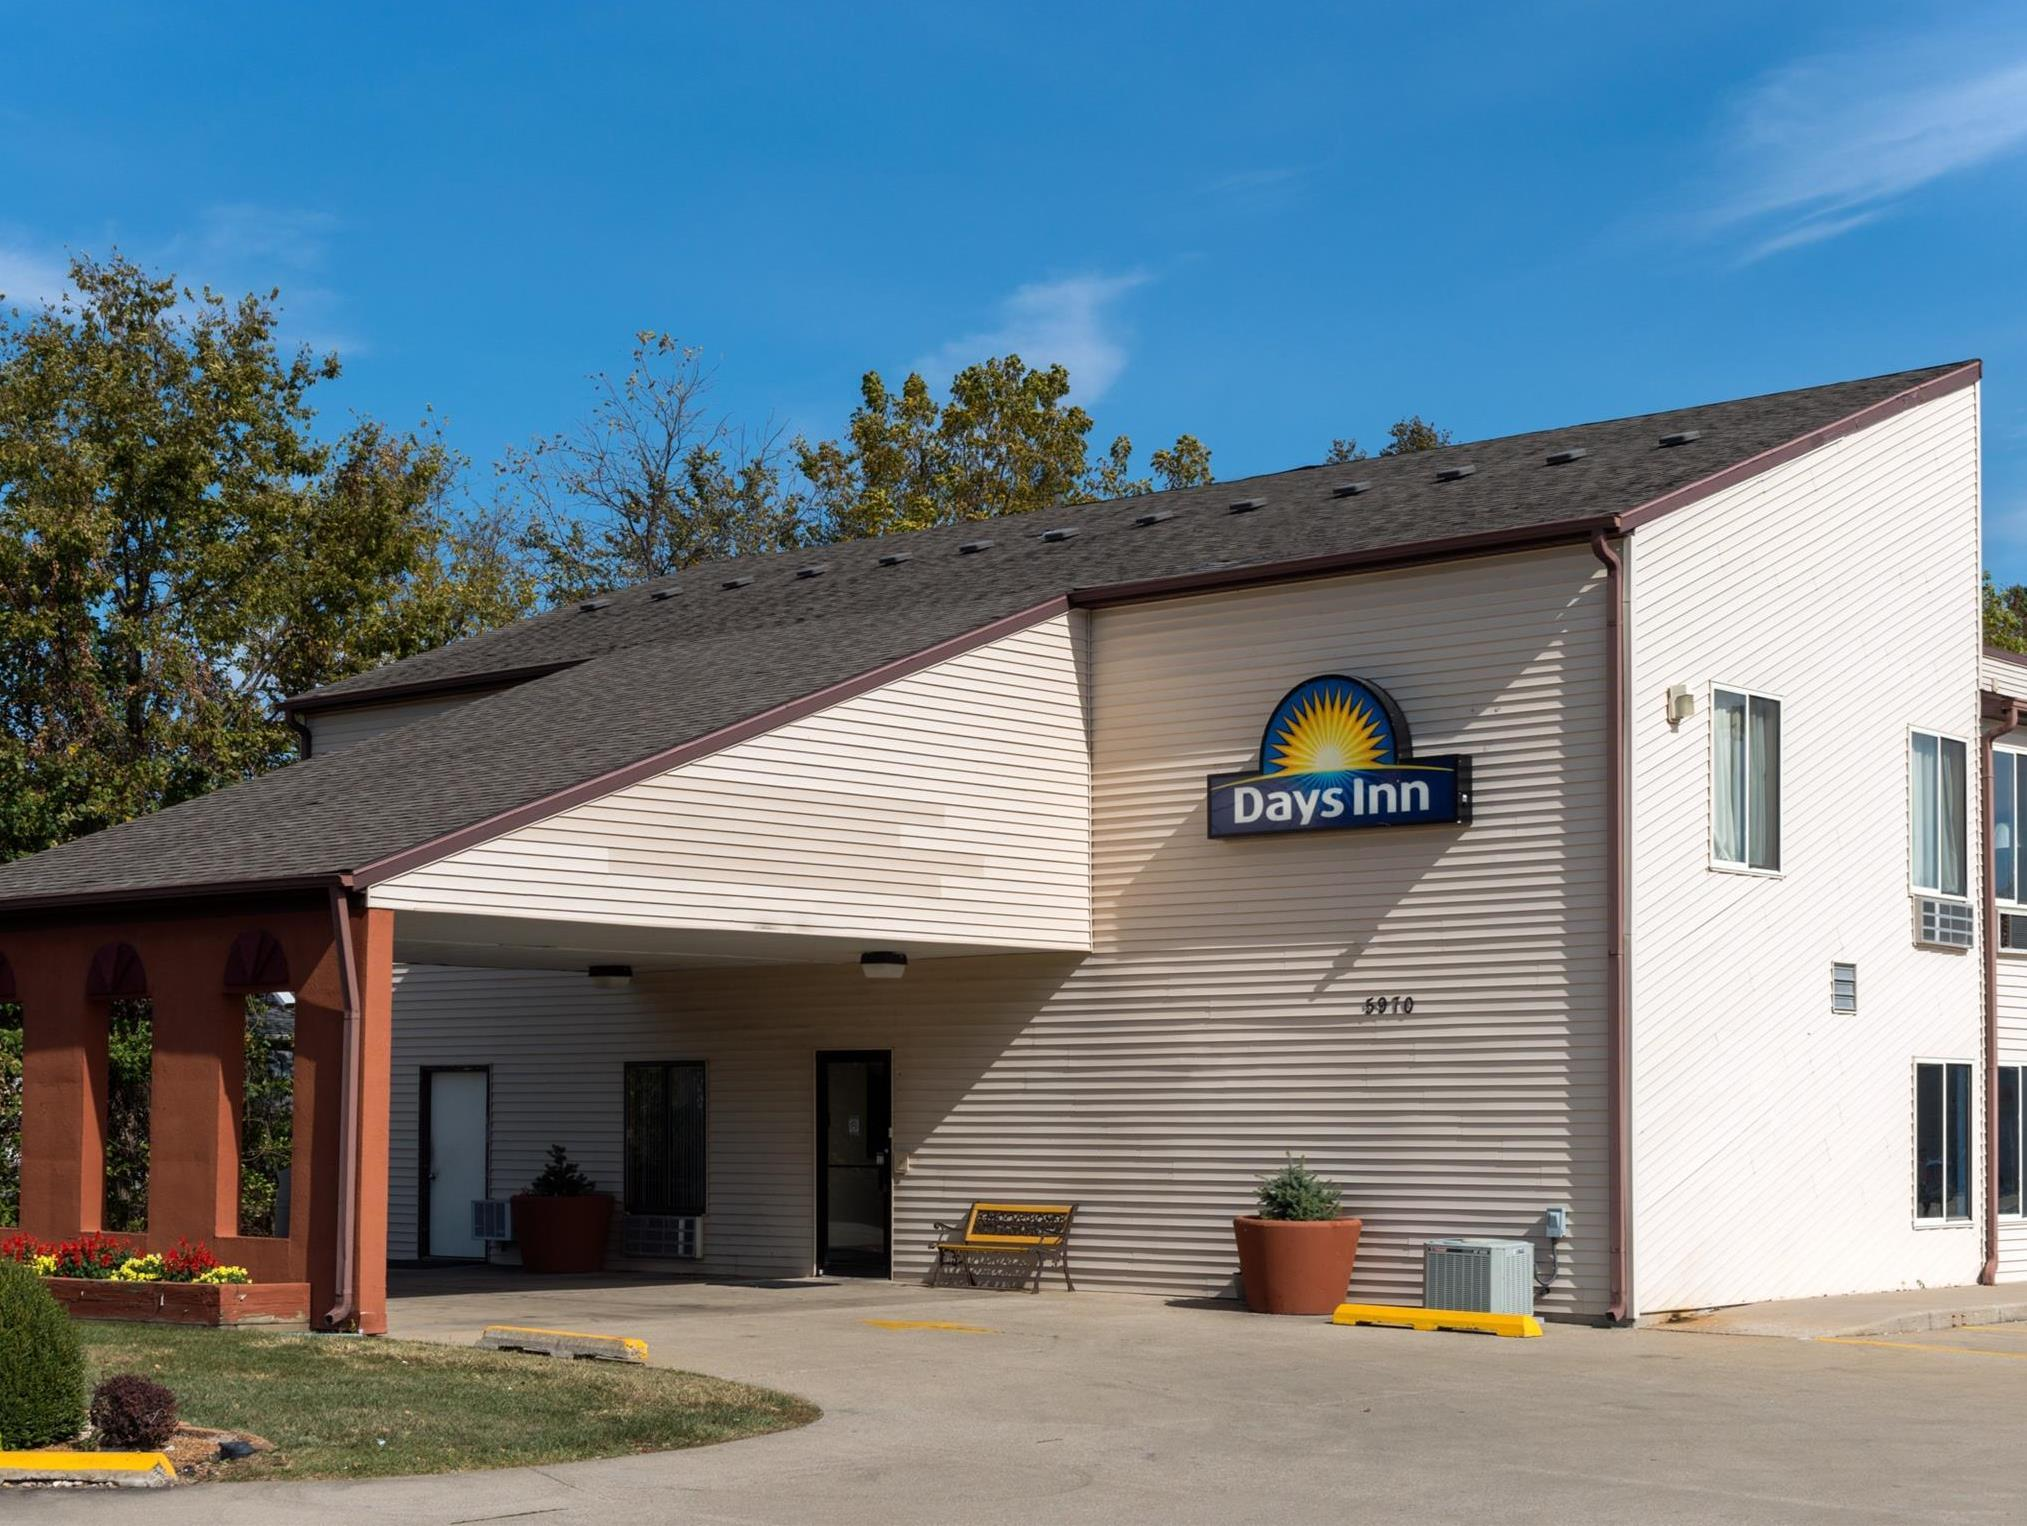 Days Inn by Wyndham Springfield, Sangamon